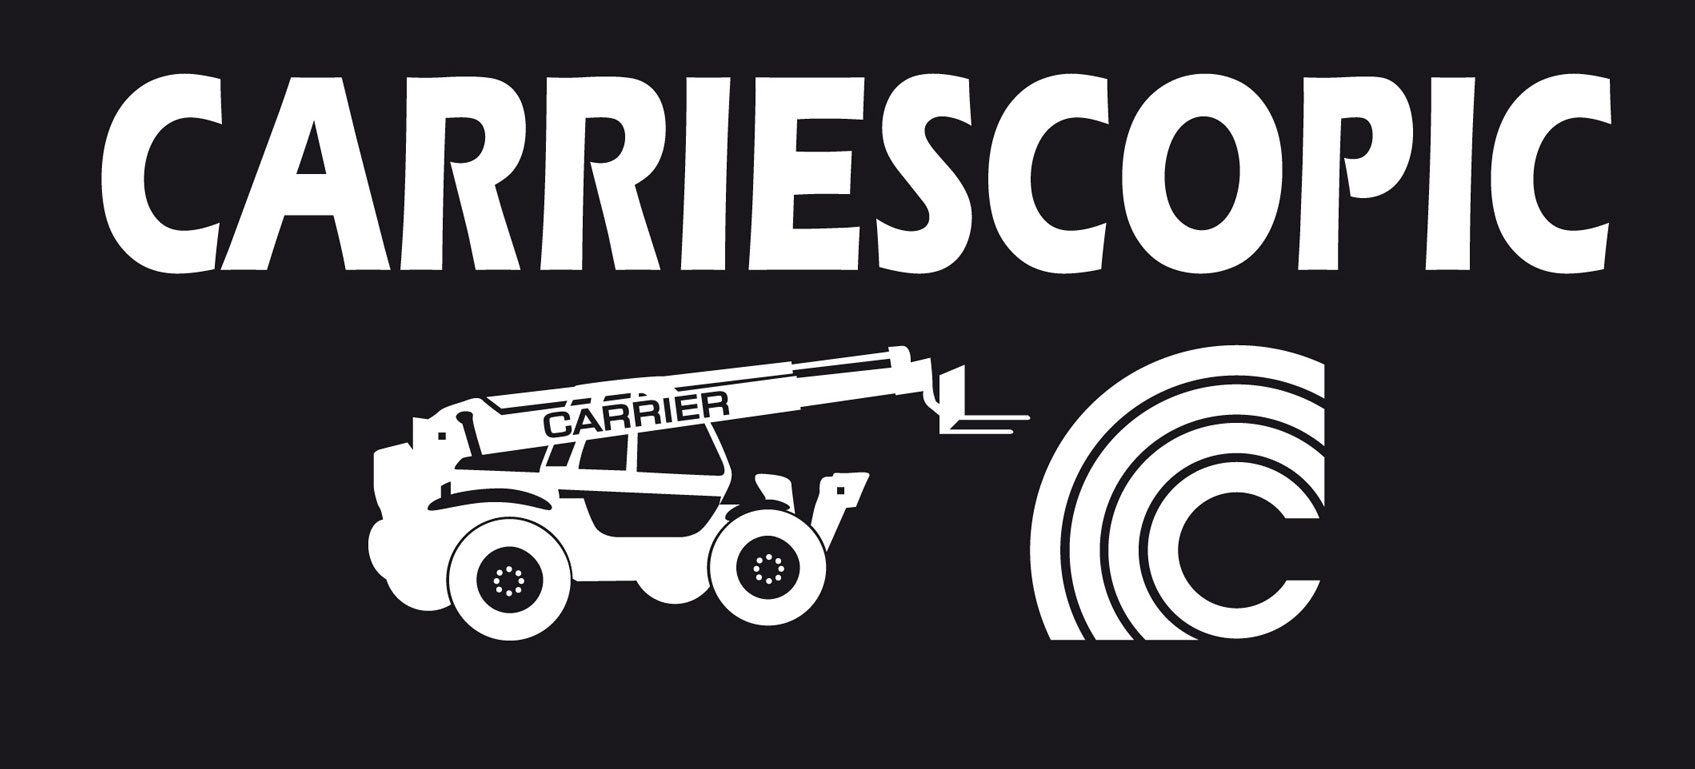 LOGO-CARRIESCOPIC-VECTBL